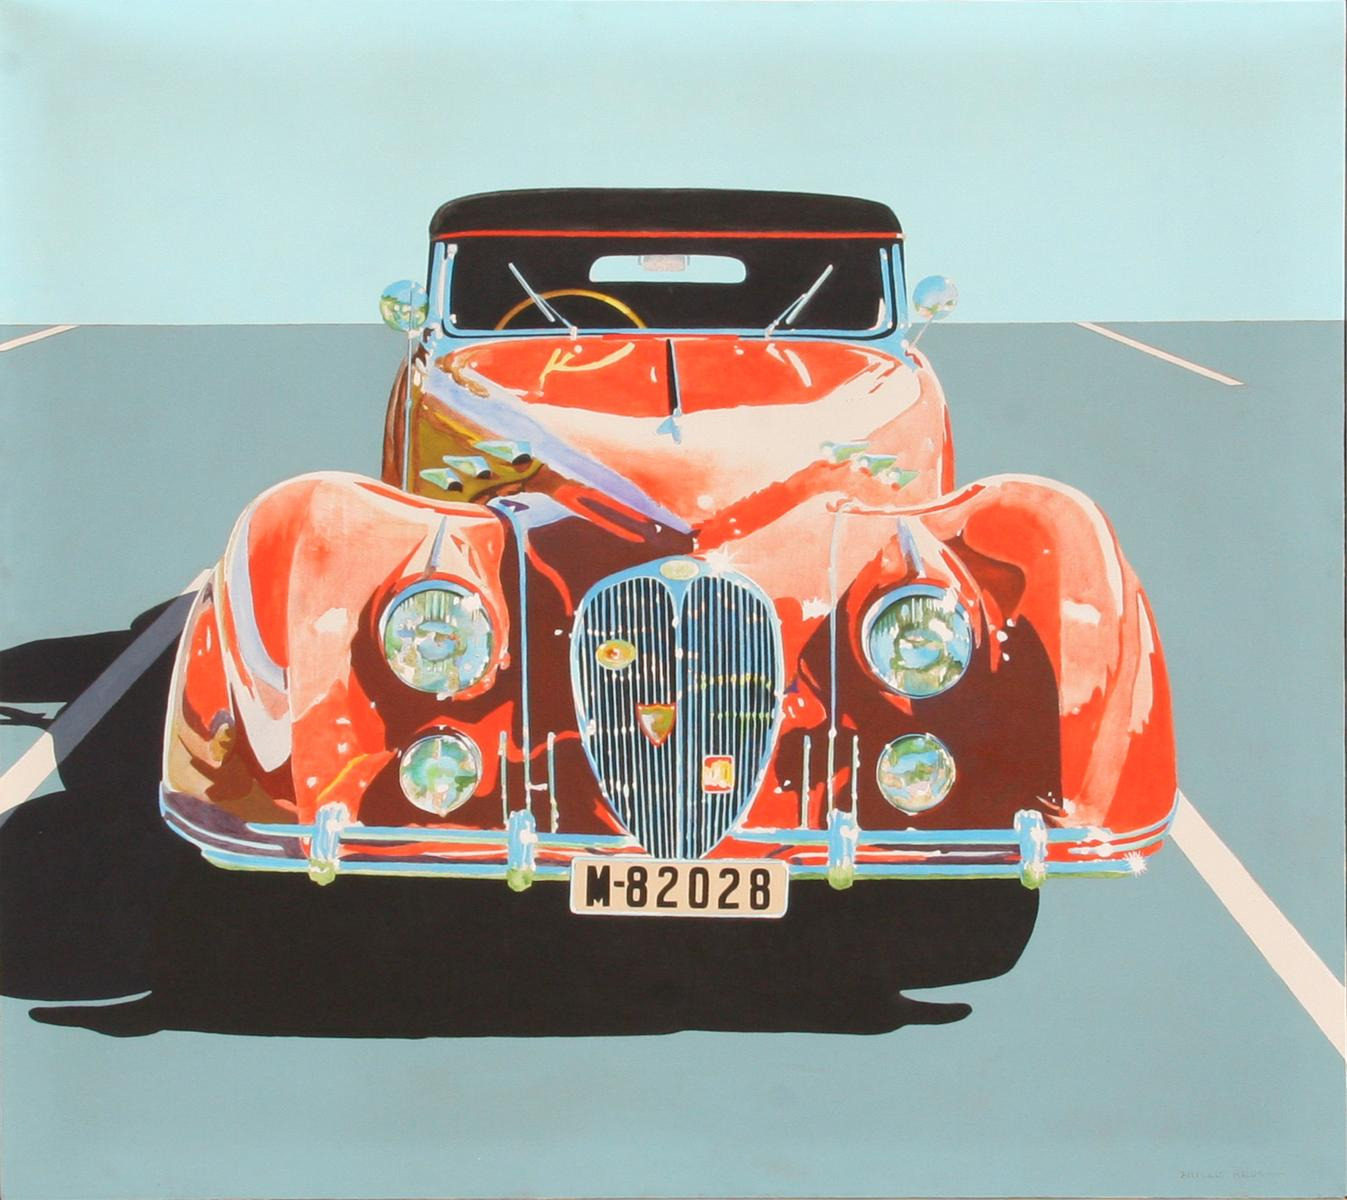 Automobile Painting In Montebello California Mail: Phyllis Krim, Delahaye, Classic Car Painting